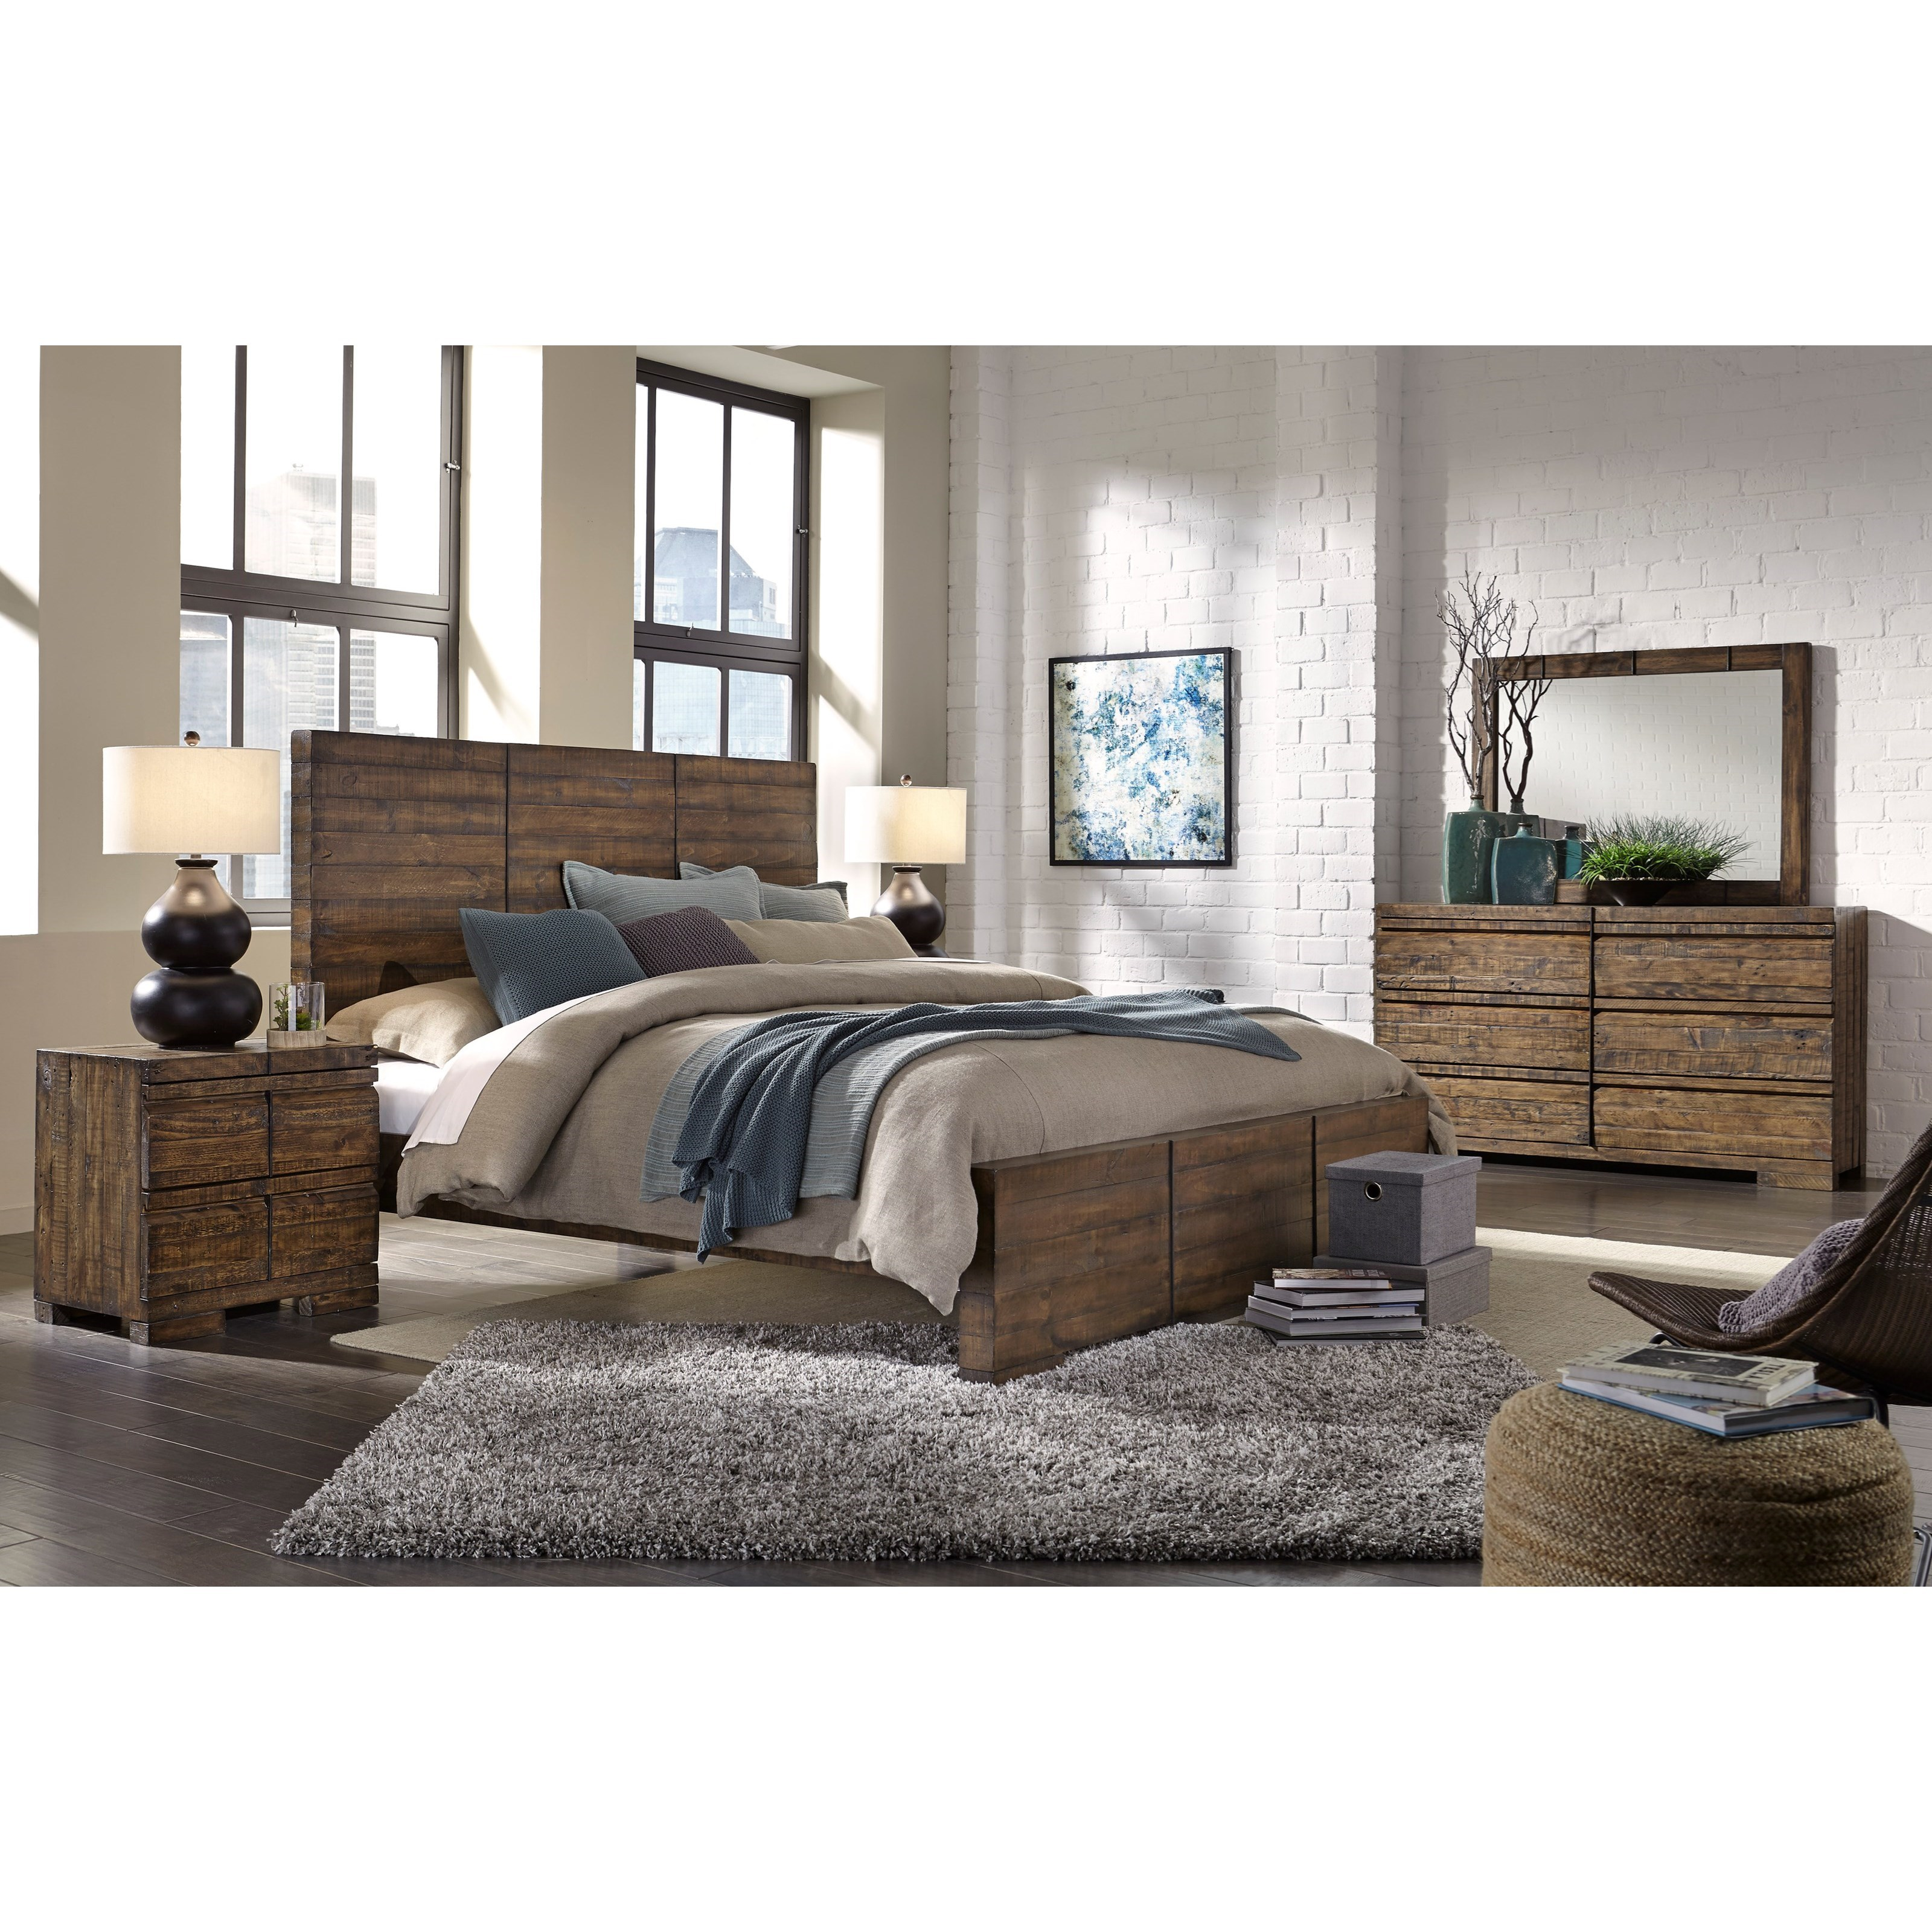 Aspenhome Dimensions California King Bedroom Group - Item Number: I52 CK Bedroom Group 1